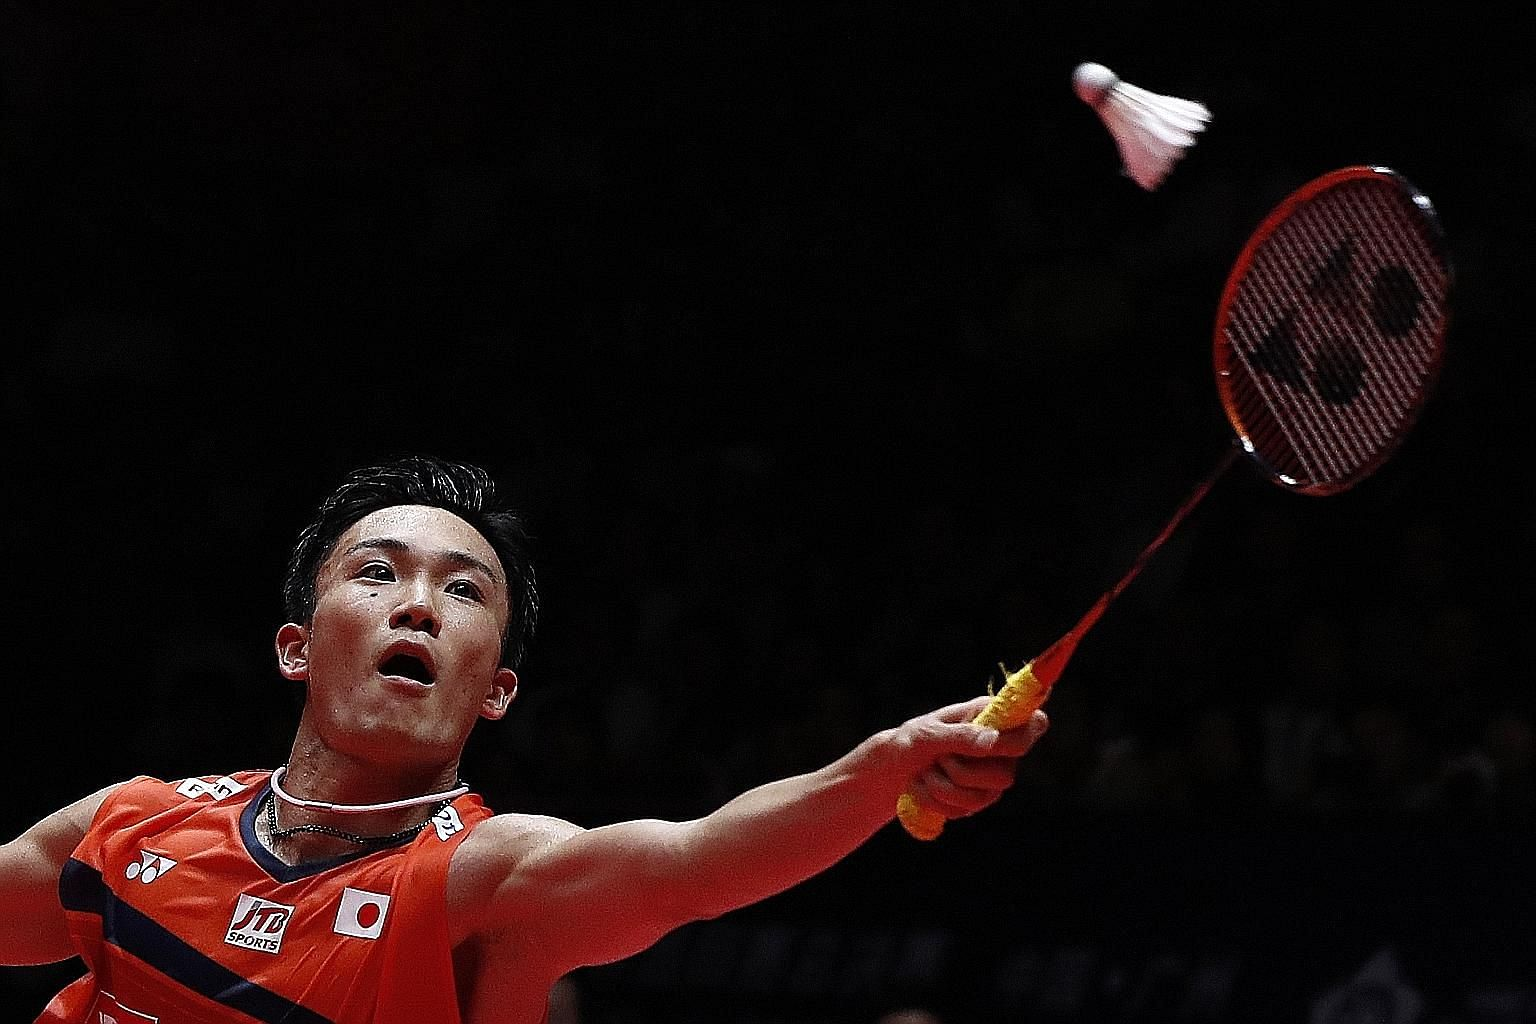 Japan's Kento Momota captured a record 11th title of the year in yesterday's season finale, surpassing the 10 tournament wins racked up by Malaysian great Lee Chong Wei in 2010.